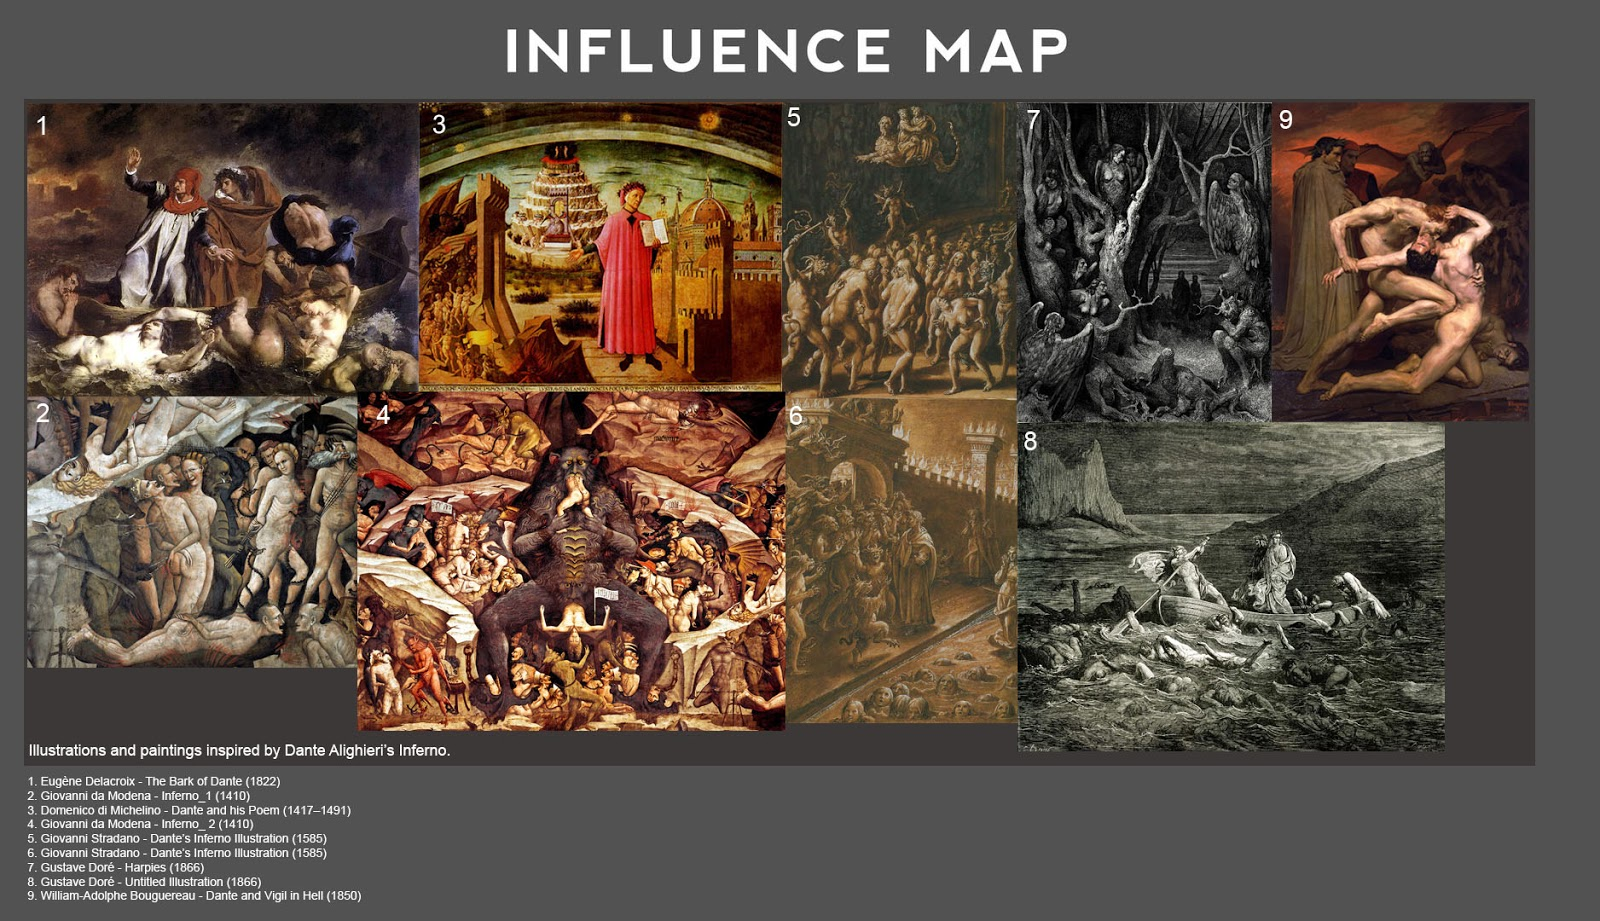 the influence of dantes inferno Dante alighieri first published mon jan 29, 2001 substantive revision fri jul 13, 2018  (or of the hubris that resulted in nimrod's linguistic isolation illustrated in inferno 31)  foster, kenelm, 1977, the two dantes and other studies, berkeley, ca and los angeles: university of california press.